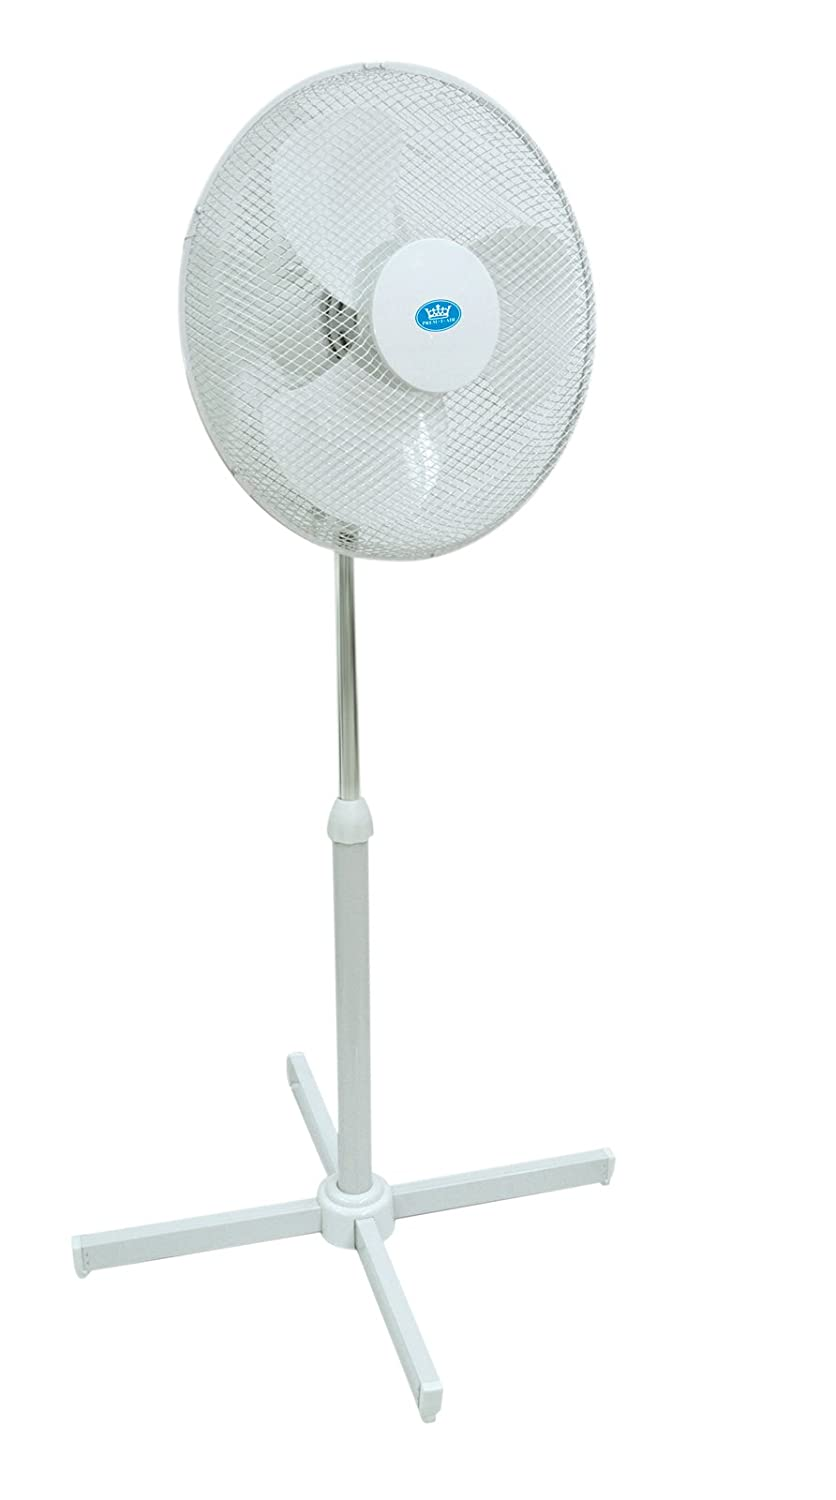 your shld oscillating kenmore white way stand s url shop fan getimage pedestal